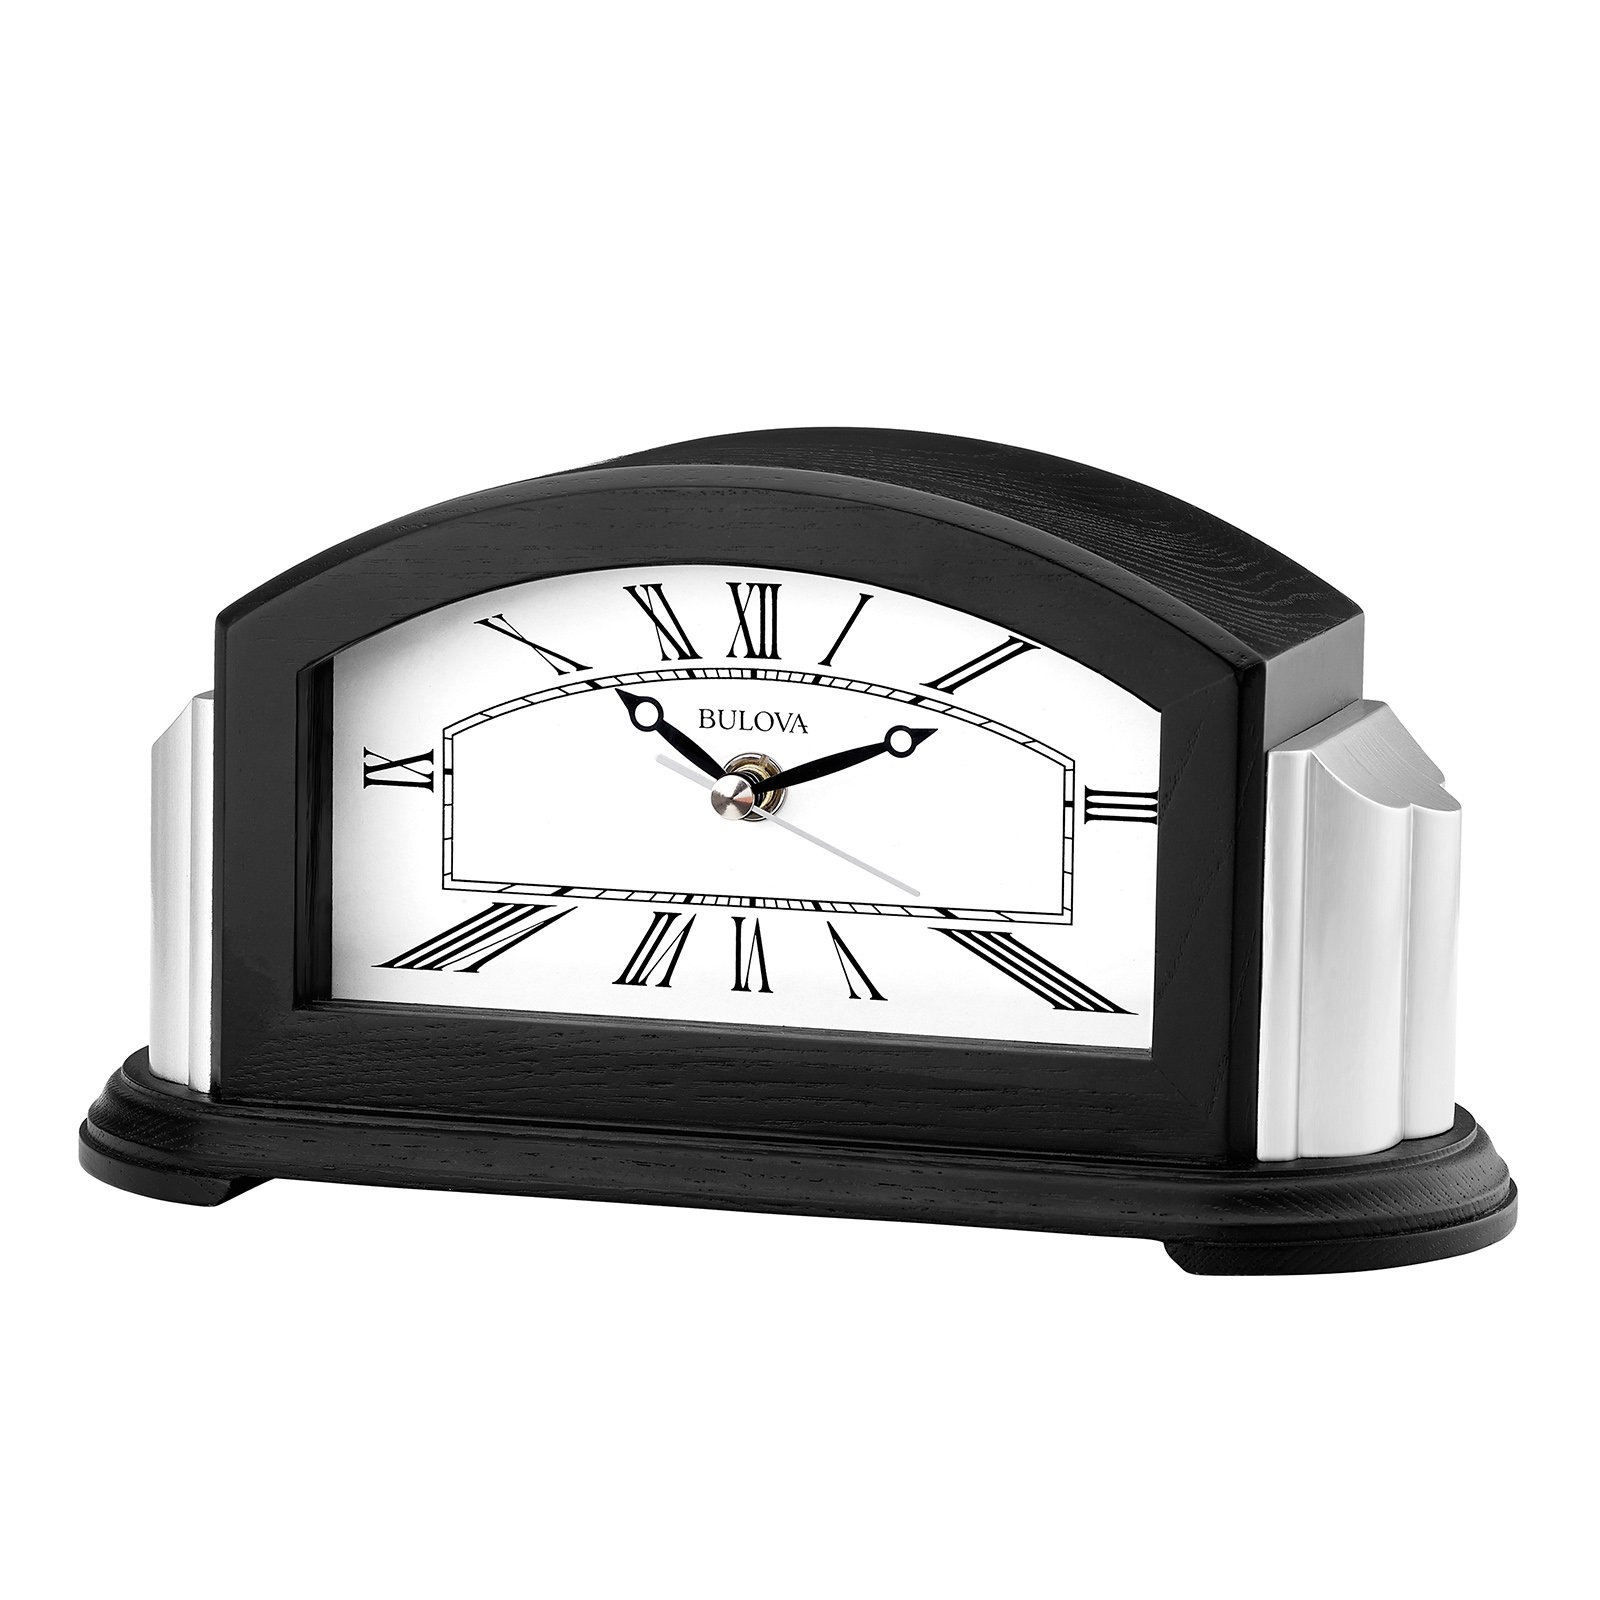 Bulova Clock Bulova Astor Mantel Clock